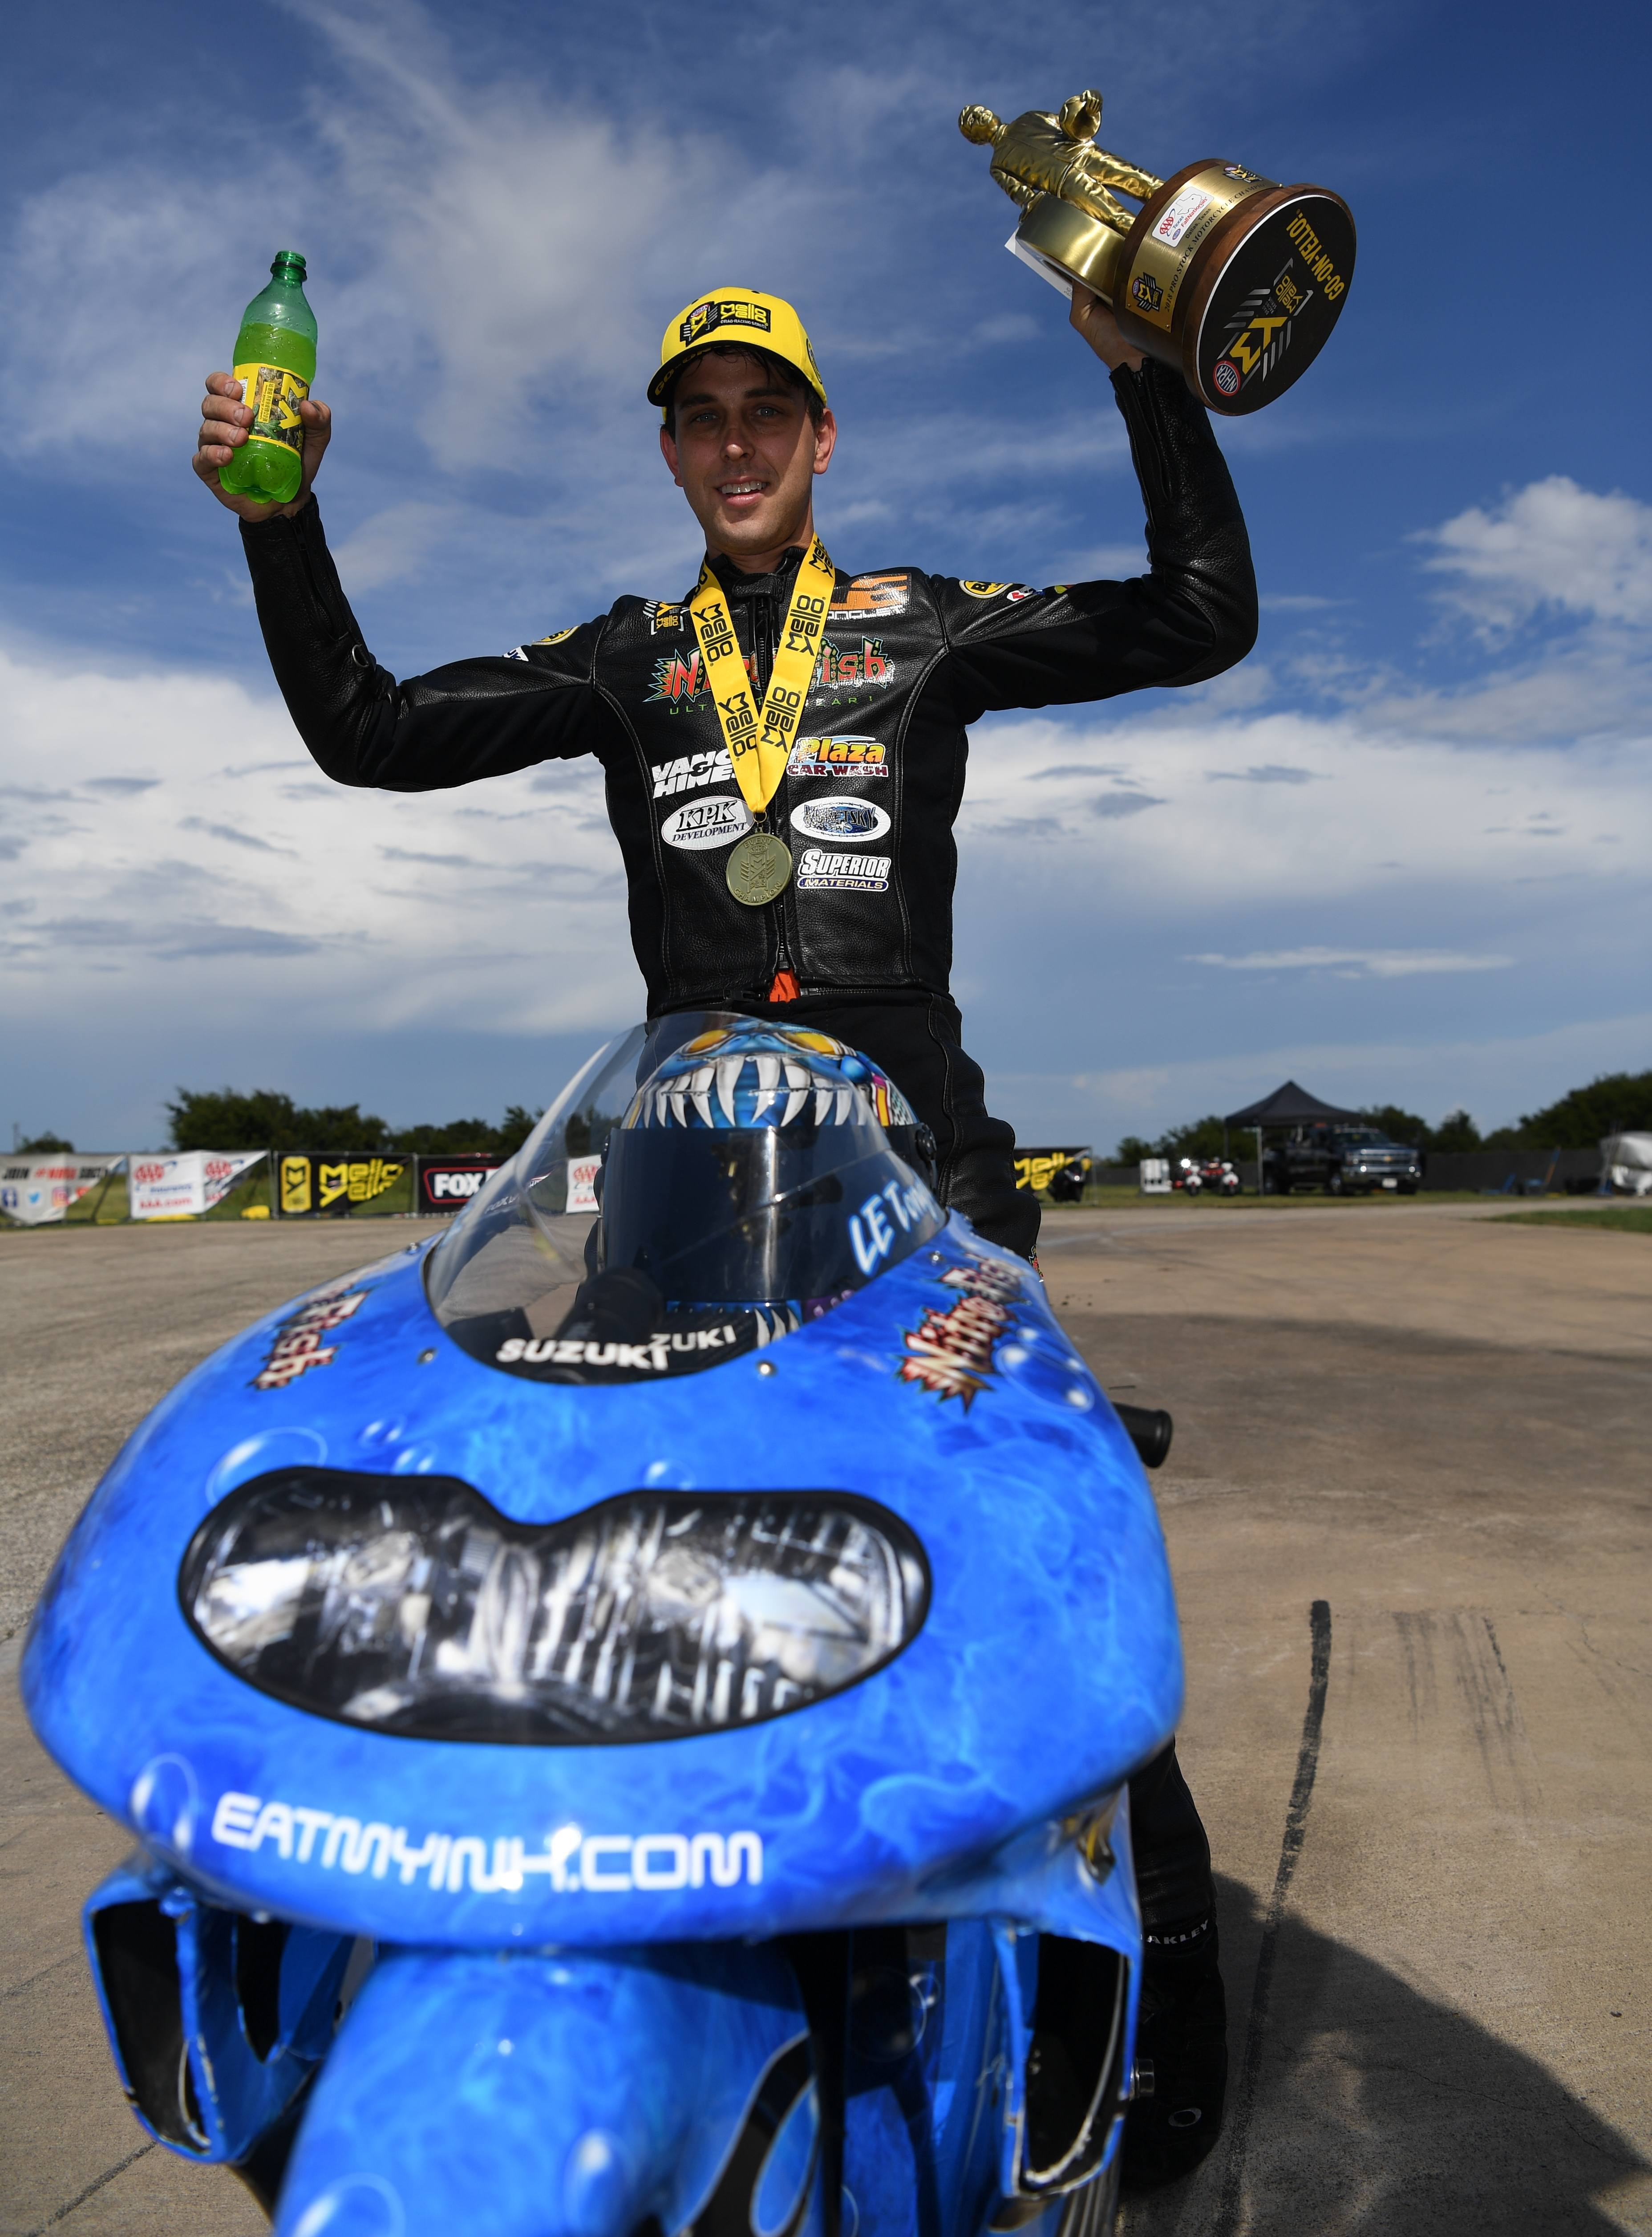 ... final round Sunday at the NHRA AAA Texas FallNationals near Dallas  wasn t any big issue for Nitro Fish Suzuki Pro Stock Motorcycle racer L.E.  Tonglet. 45d20817c8b